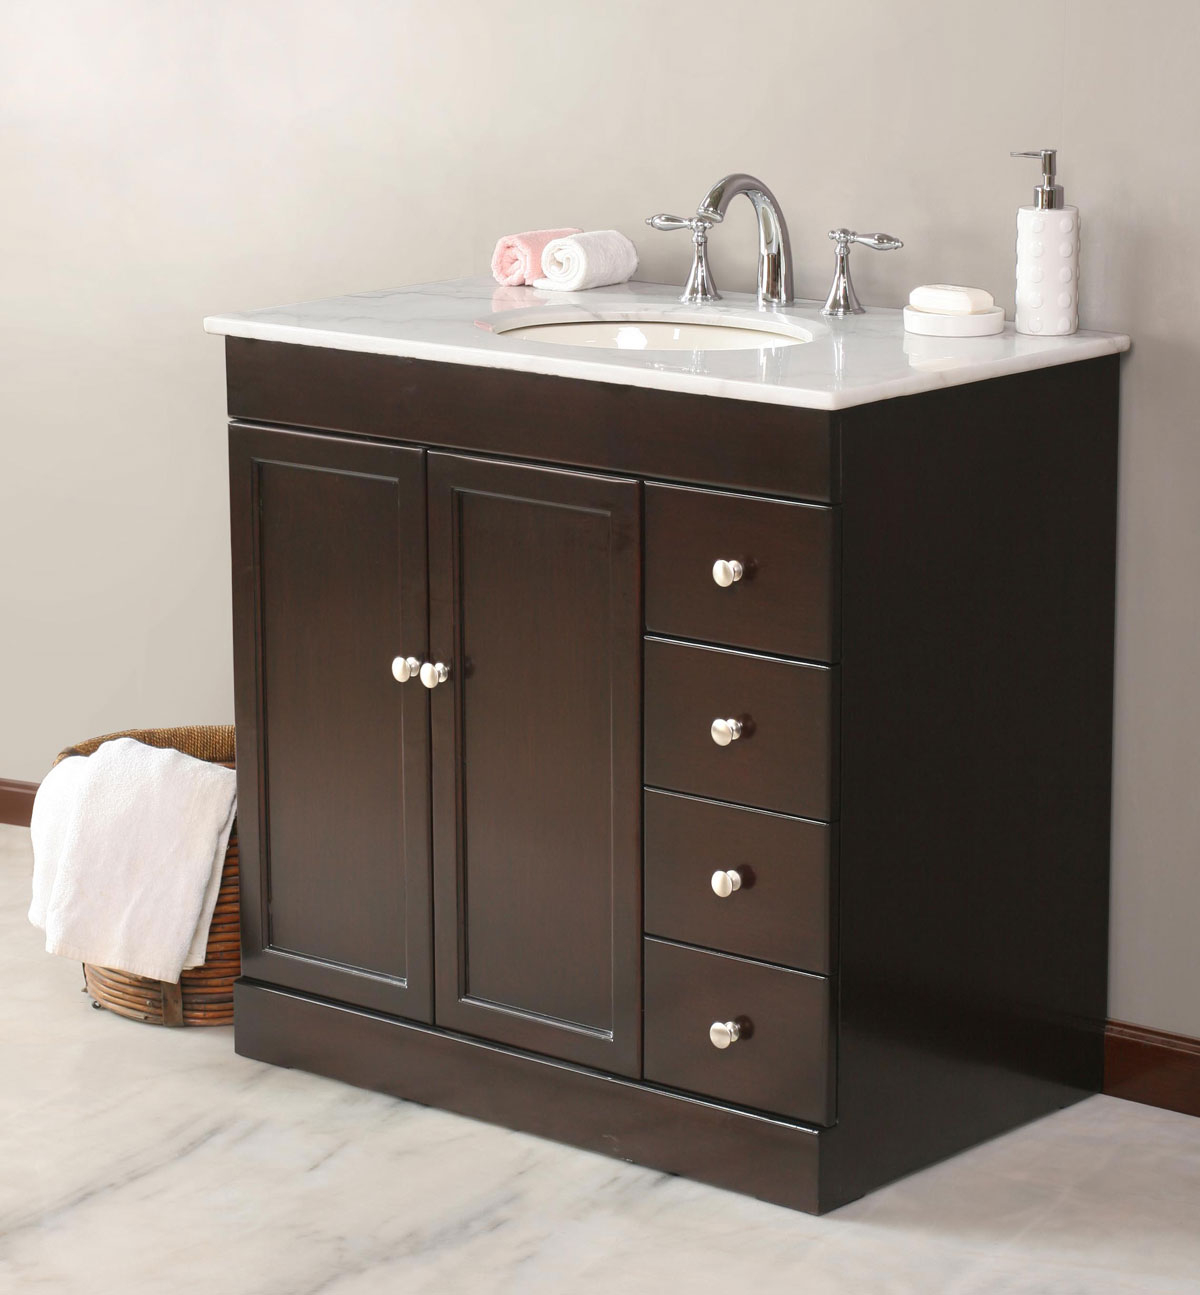 Cool 42 Bathroom Vanity With Top Stylish Jade White Inch Pertaining To 2 within Bathroom Vanity With Top